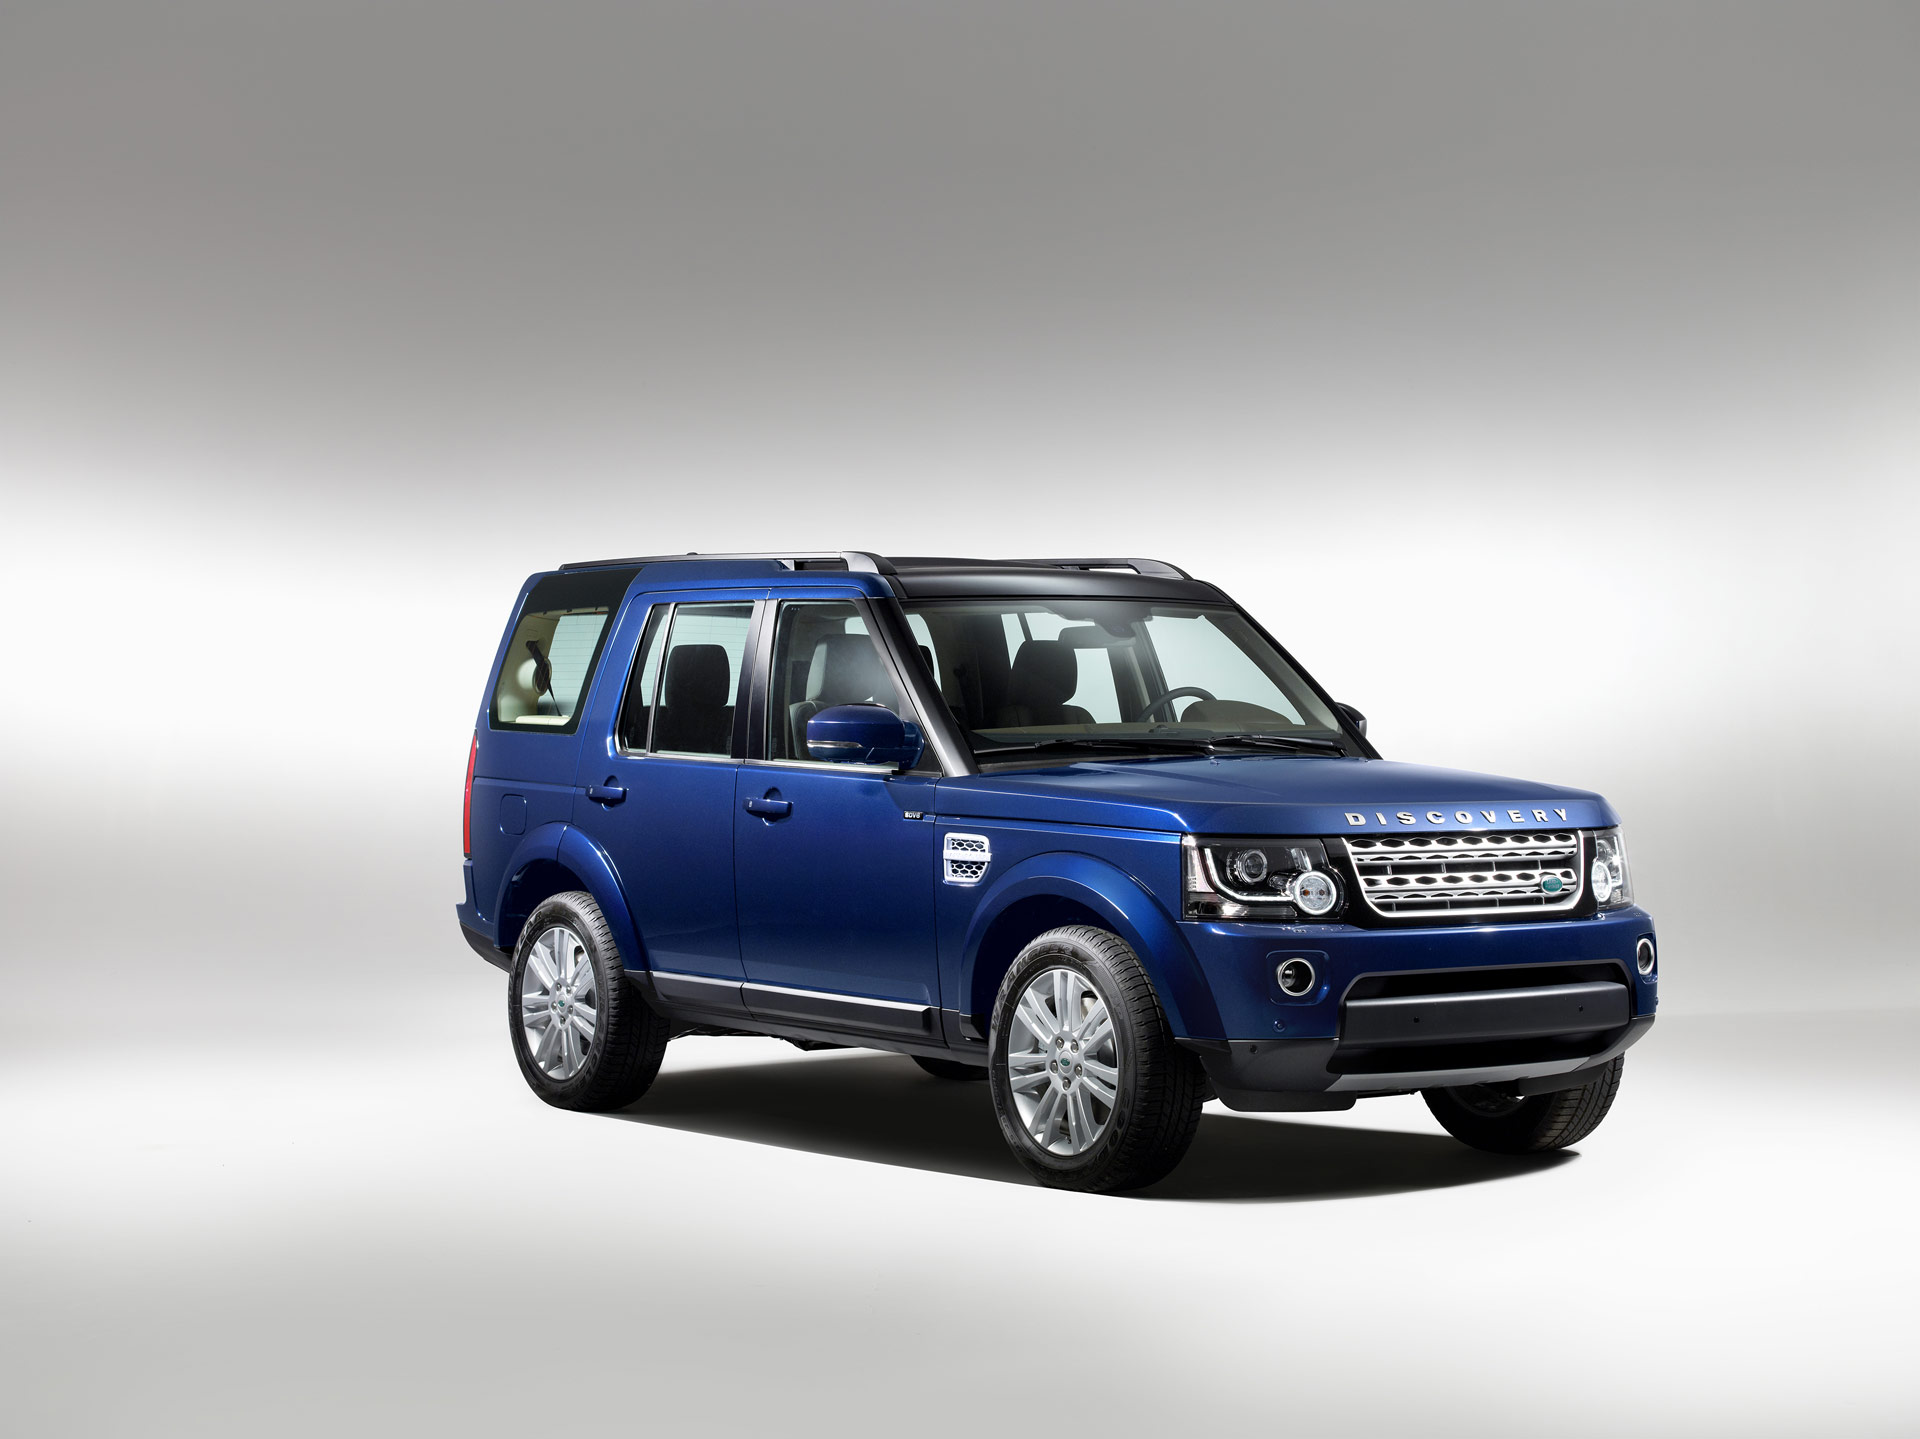 2014 Land Rover Discovery News And Information 4 Trailer Plug Wiring Diagram